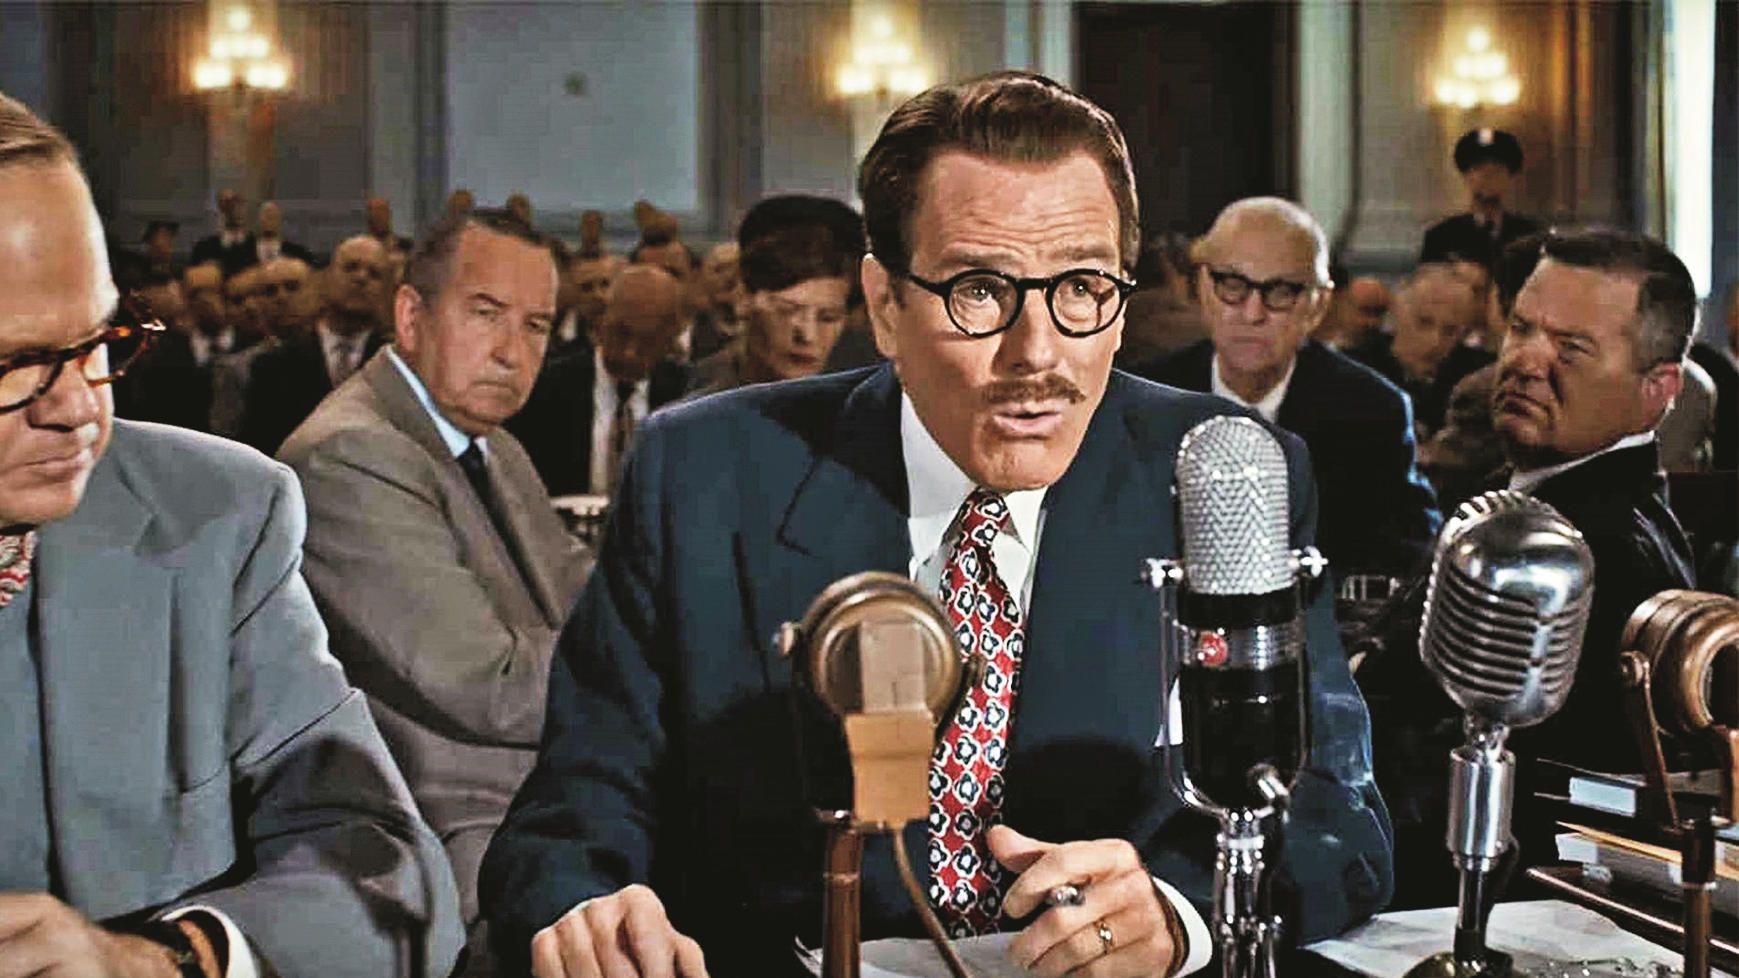 A still from Jay Roach's film 'Trumbo' (2015).